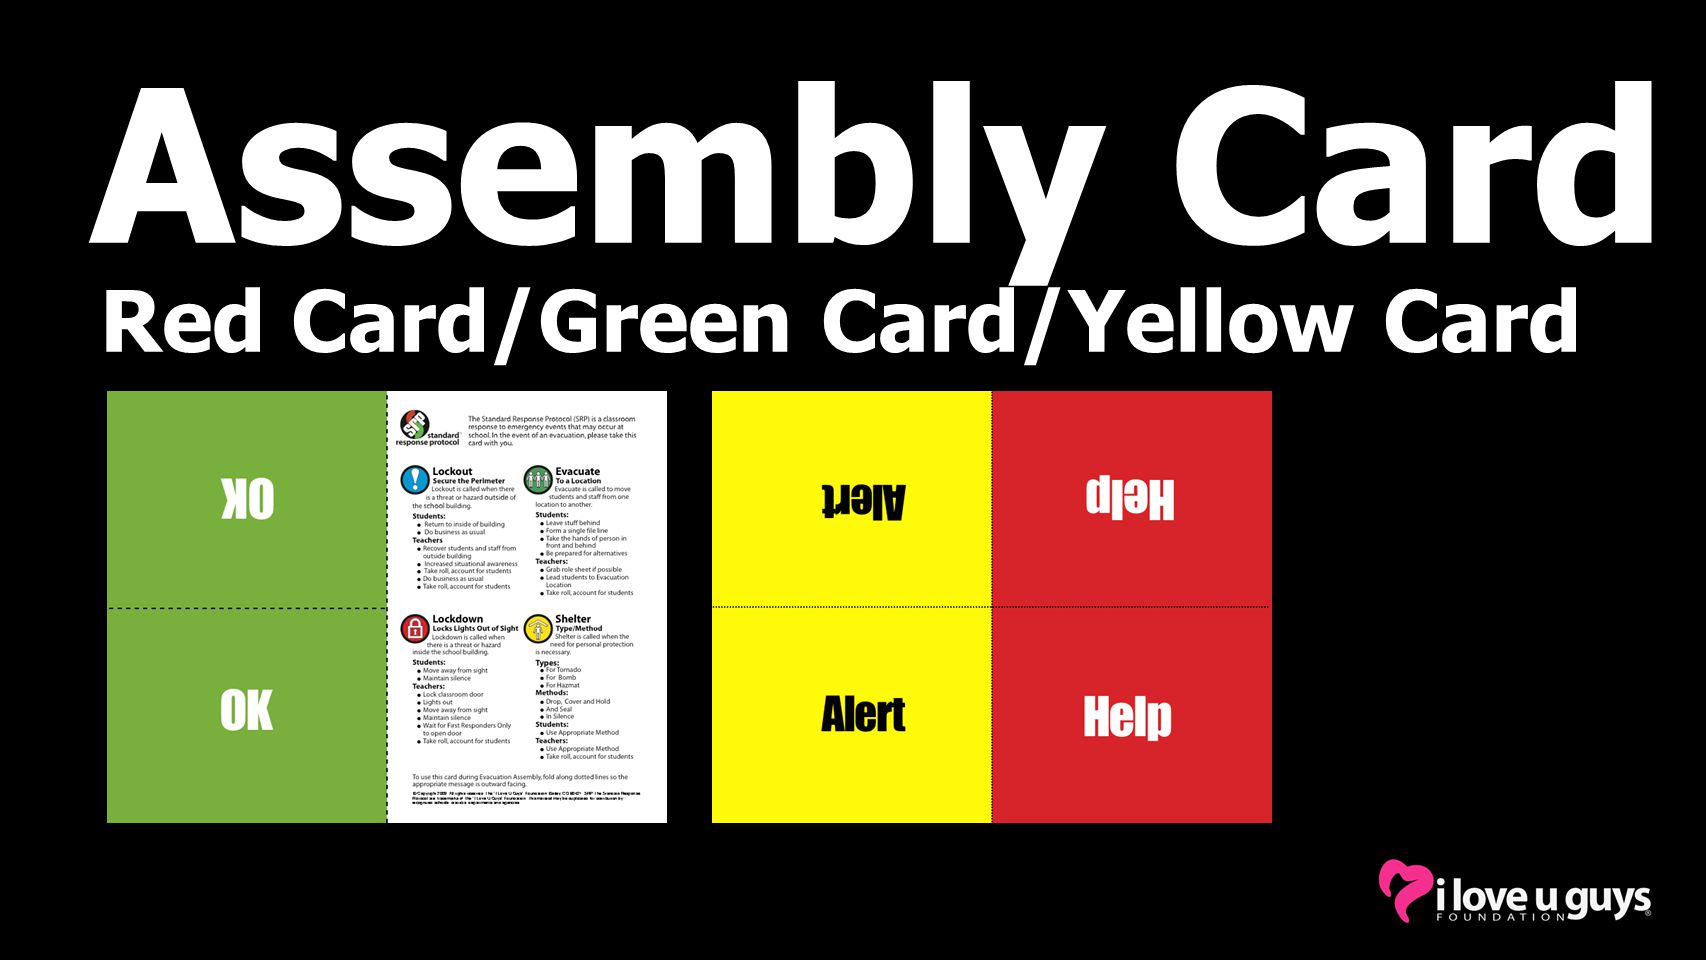 Assembly Card Red Card/Green Card/Yellow Card